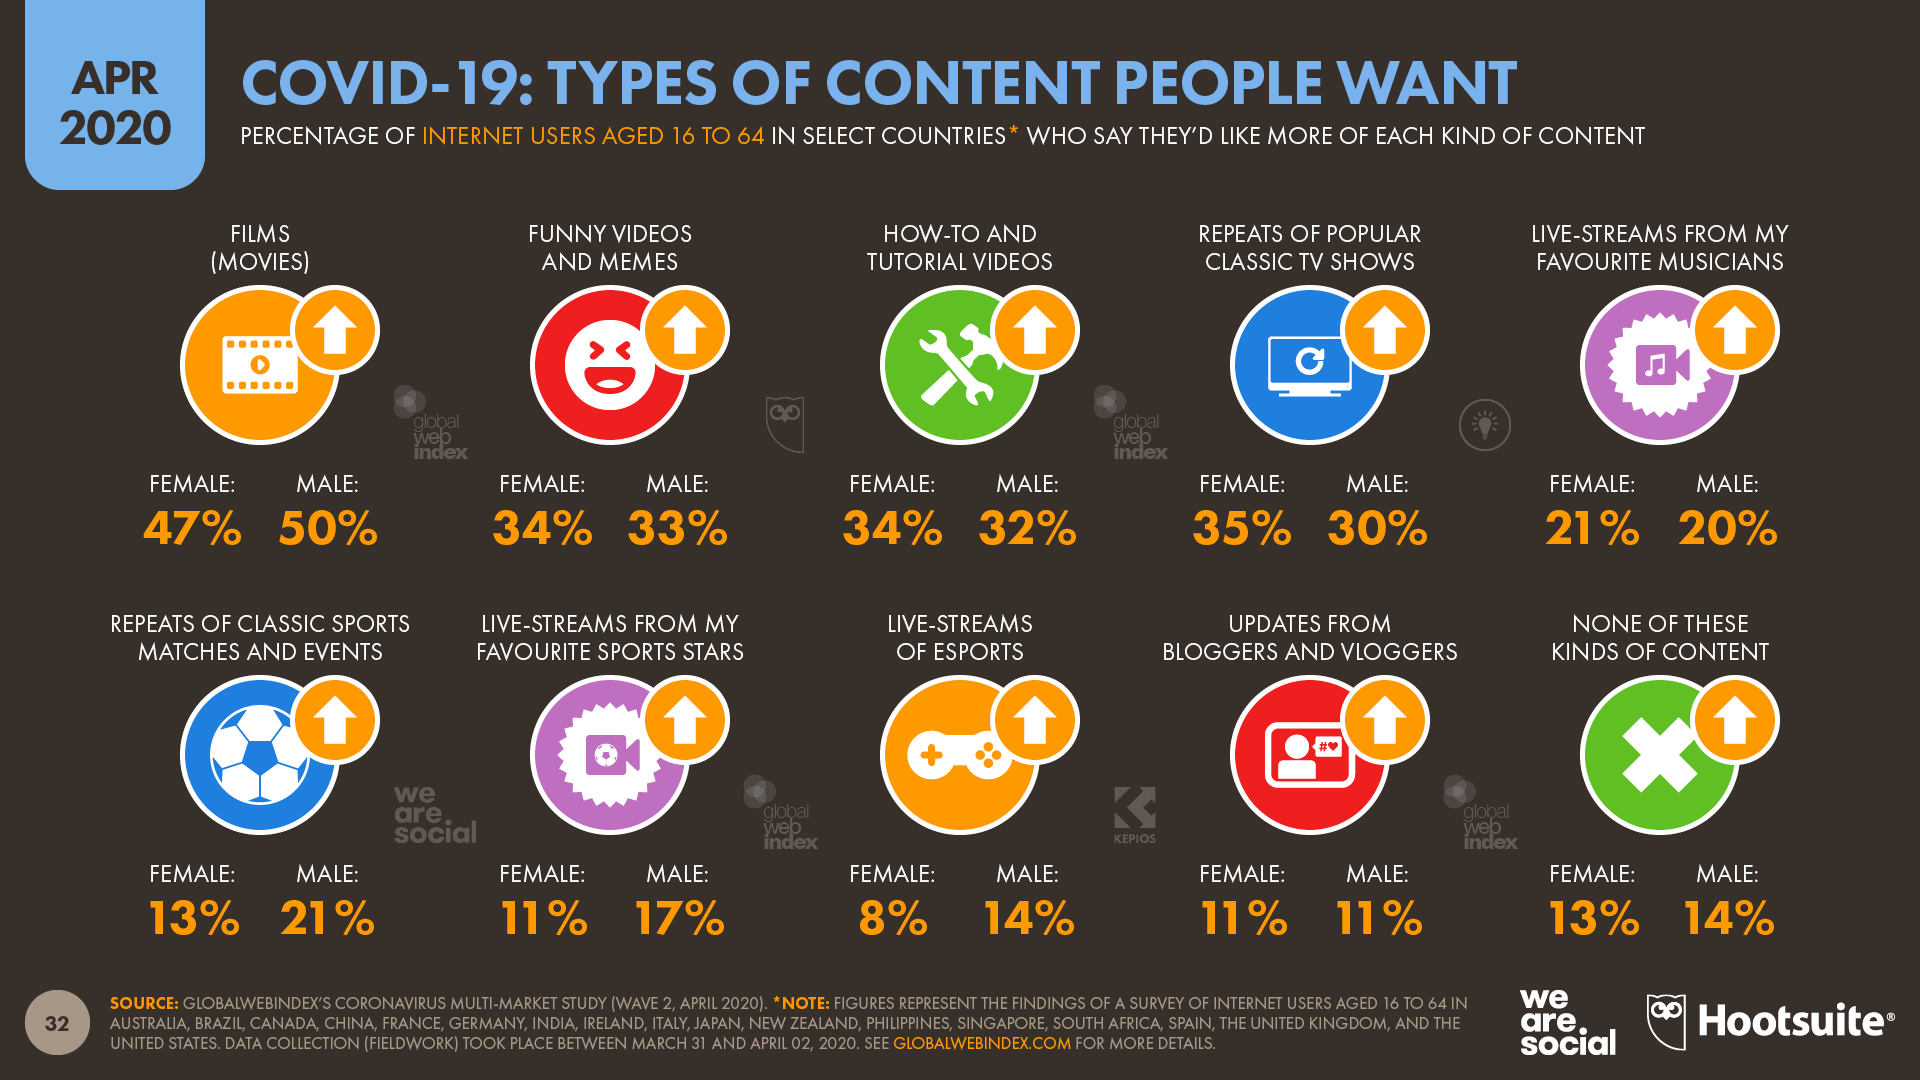 COVID-19 Insights: Types of Content People Want April 2020 DataReportal